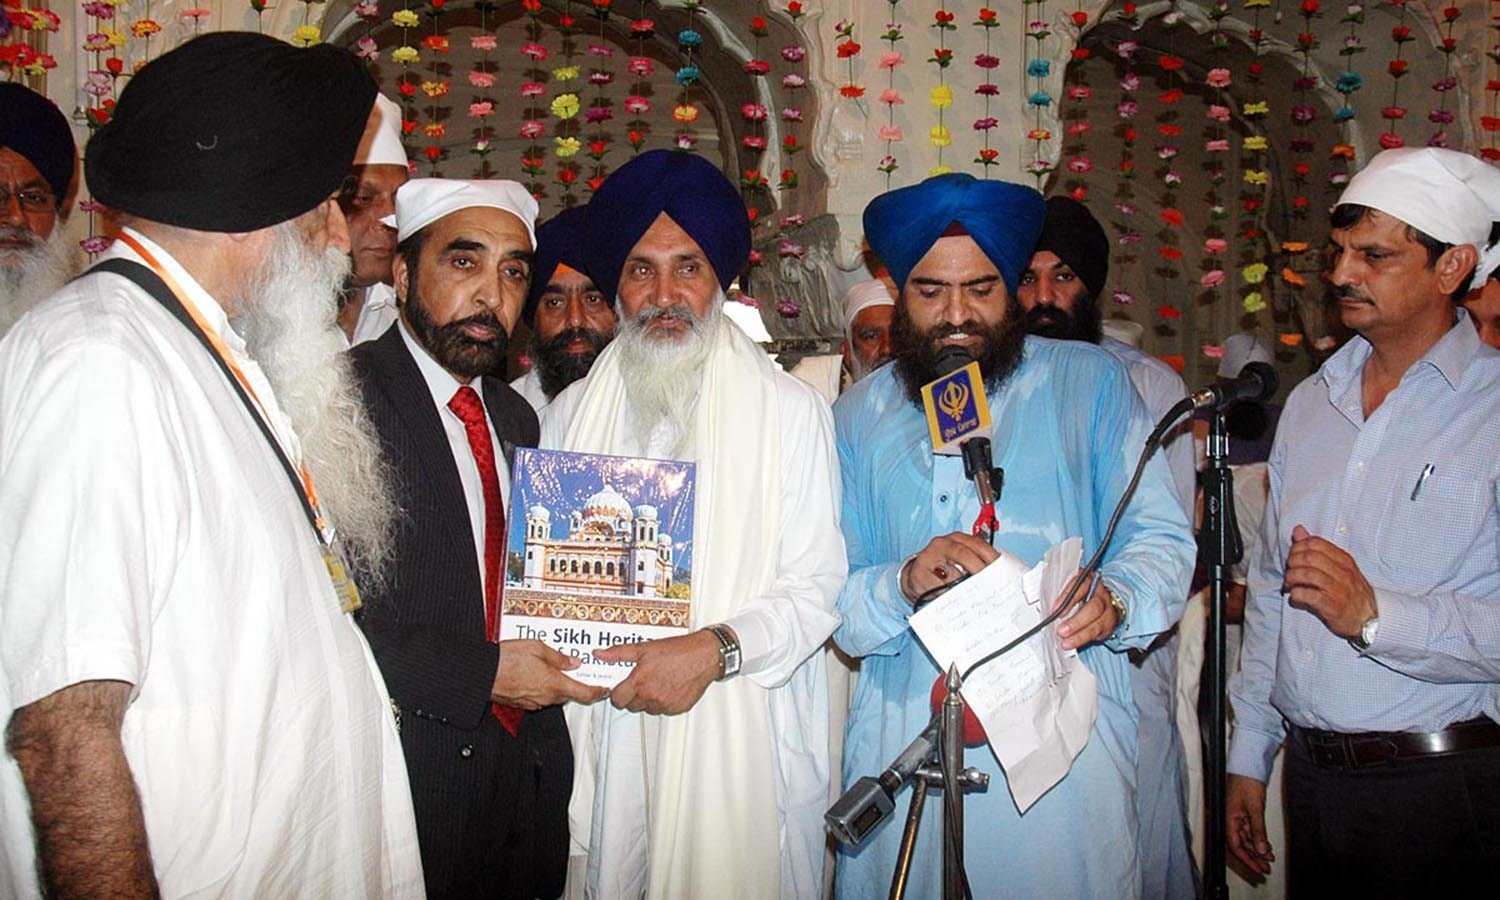 Chairman Evacuee Trust Property Board Siddiq ul Farooq presenting a book The Sikh Heritage of Pakistan to Leader of delegation of Indian Sikh Pilgrims, Ram Paul Singh at Dera Sahab.